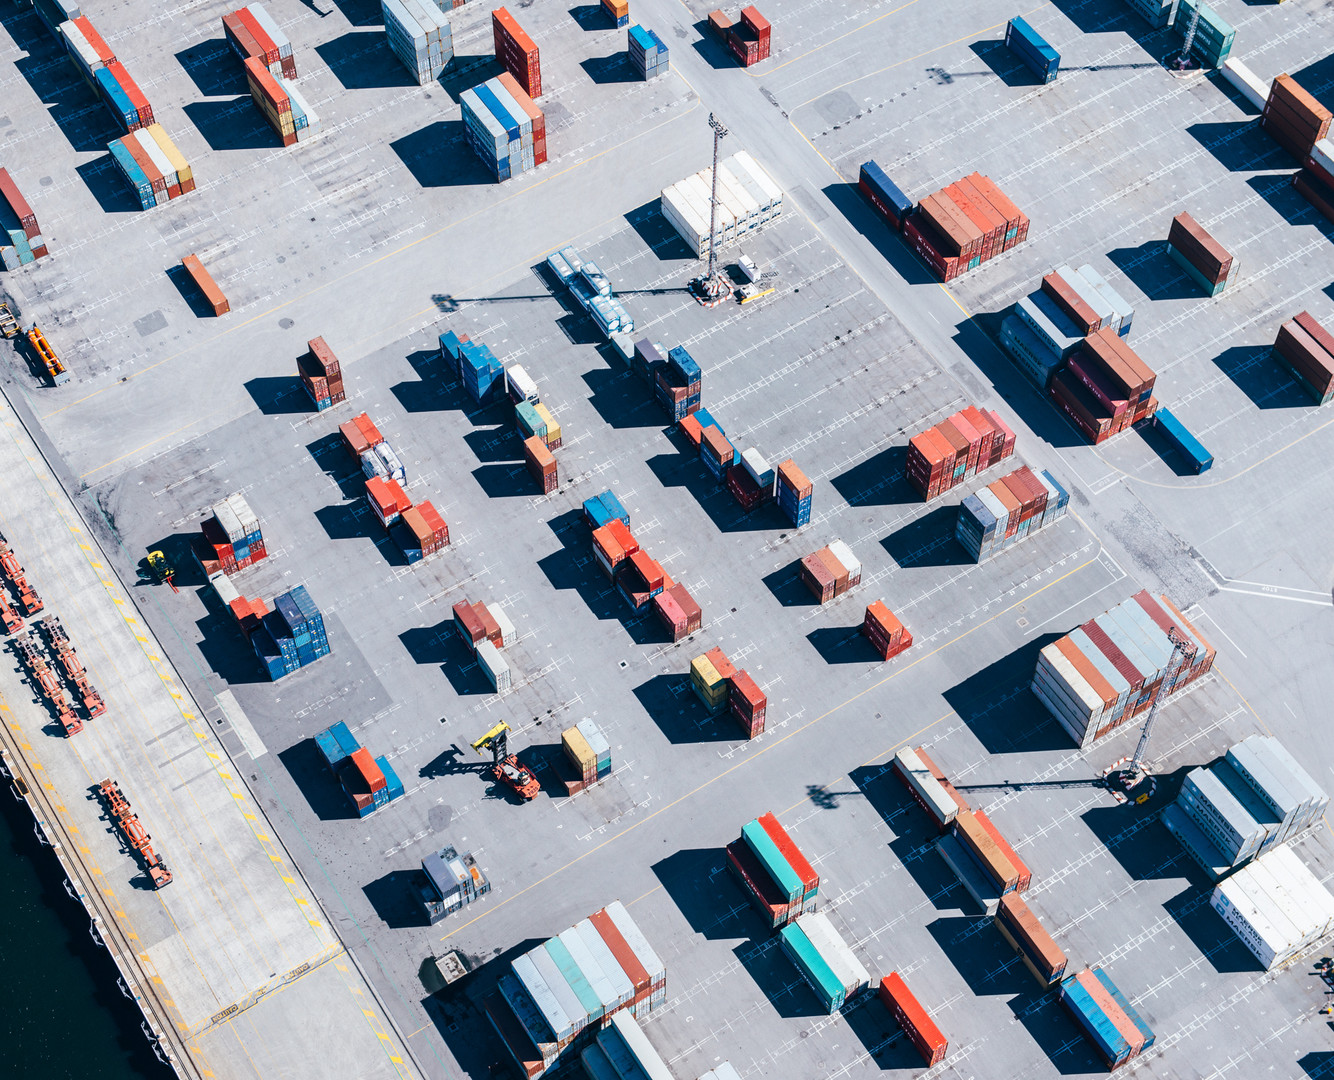 Containers of globalisation